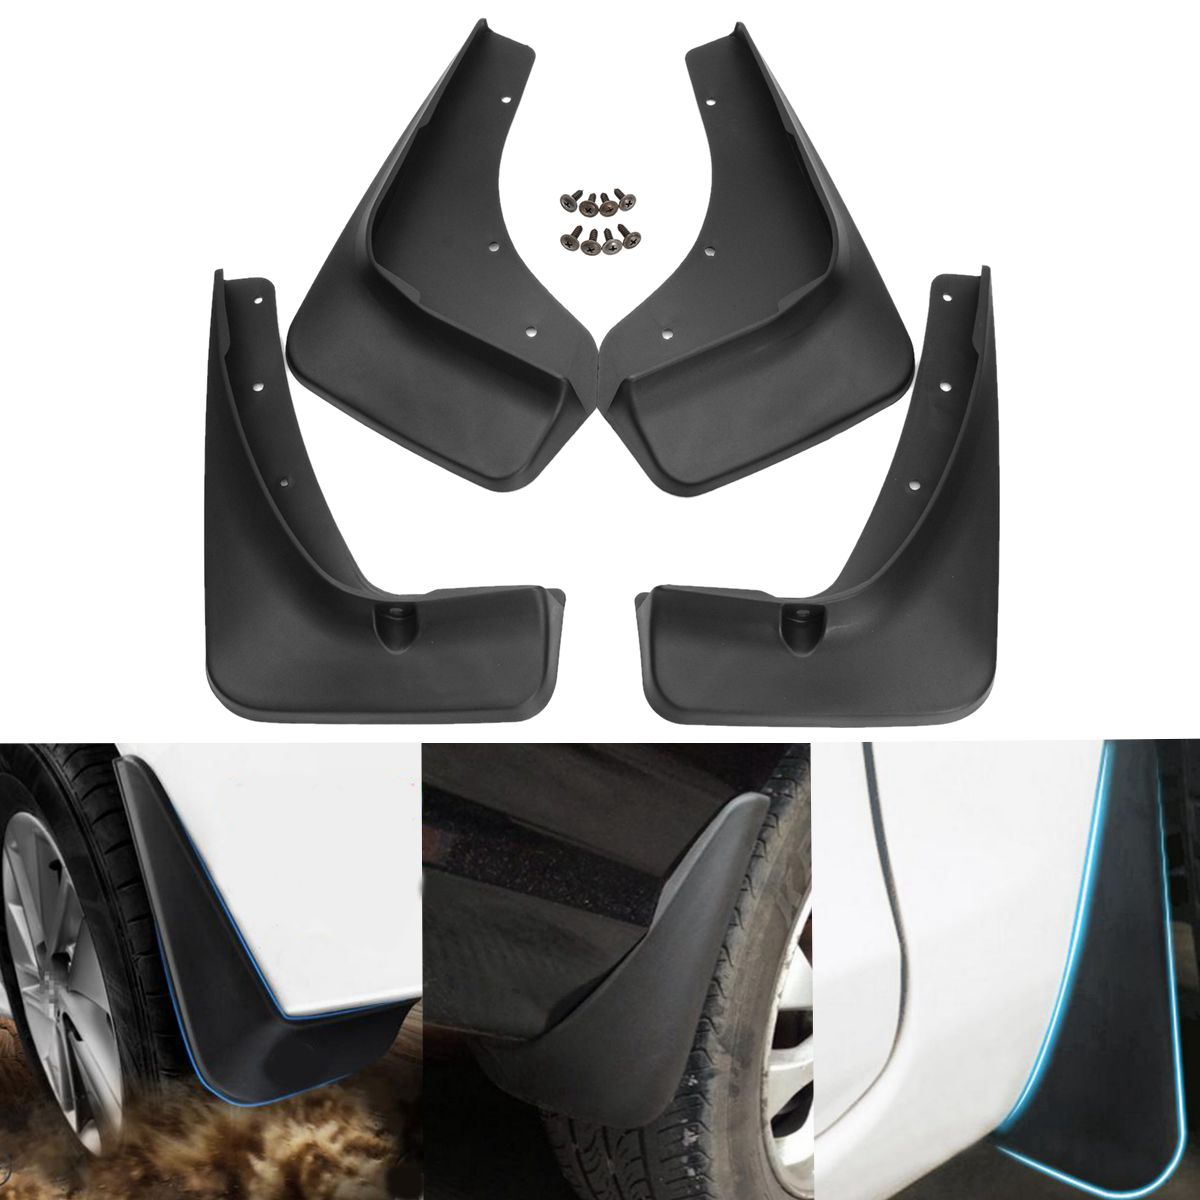 Car Rear Front Mud Flaps Fender Flares Splash Guards Mudguards for Mazda CX-5 CX5 2012 2013 2014 2015 2016 for ford explorer 2013 2018 plastic more fashion front rear mud guard mudguards splash flaps cover protector trim 4 piece